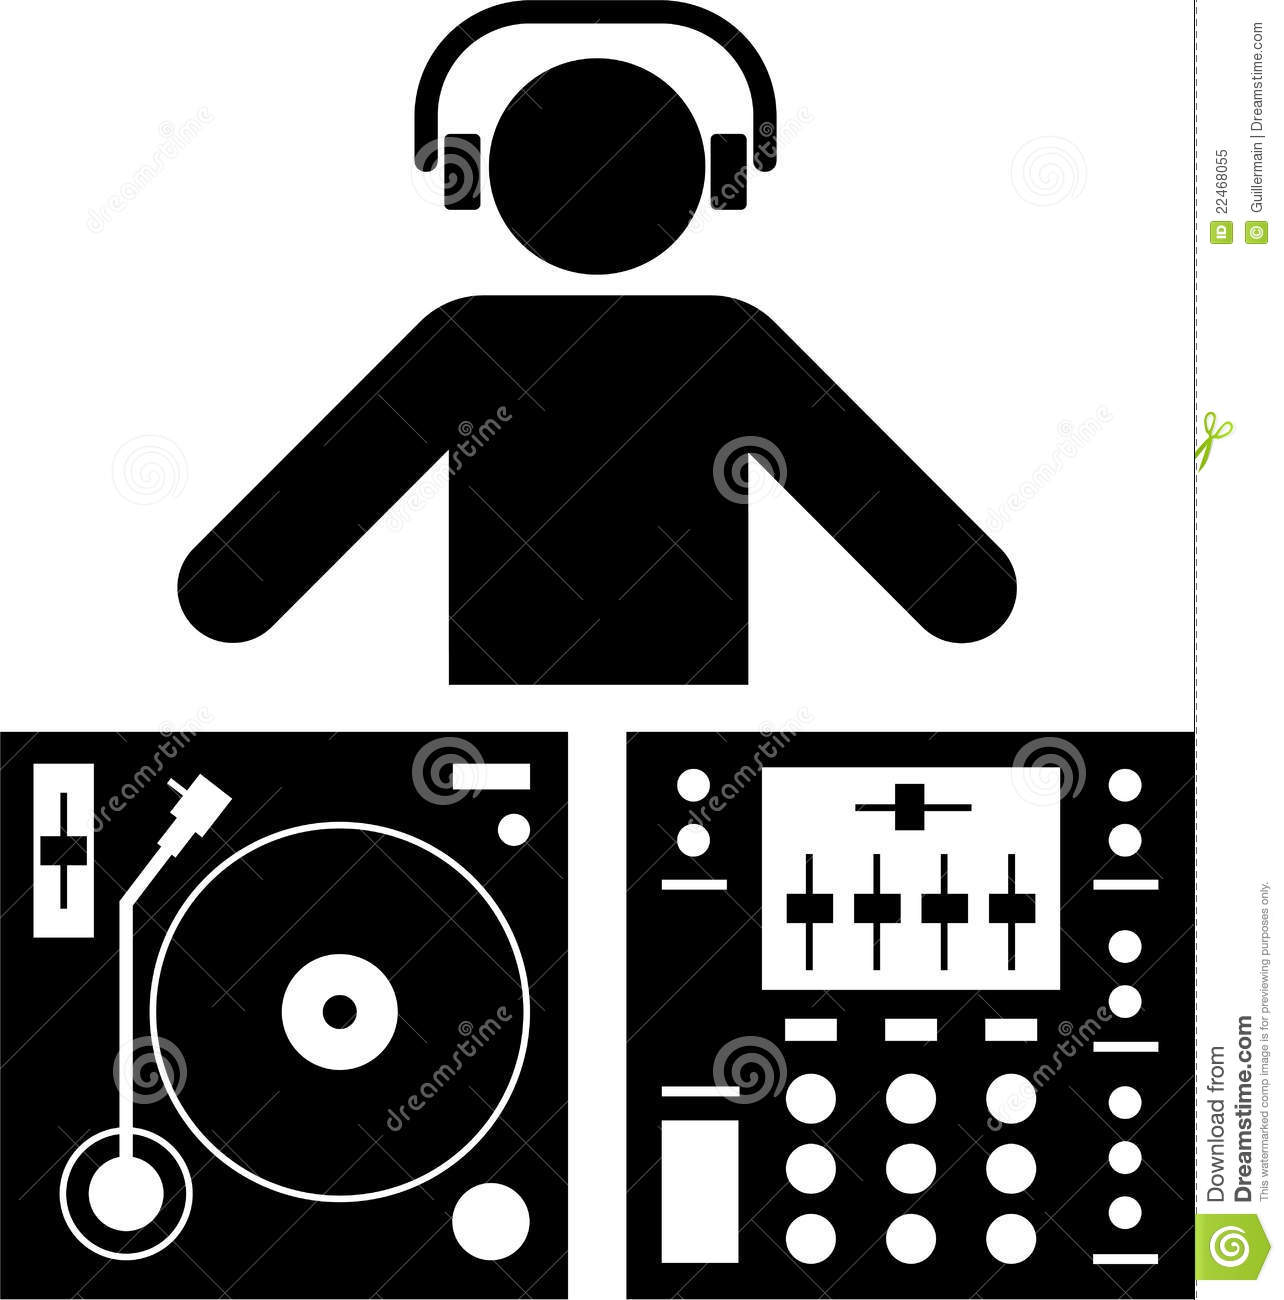 Bowser Koopa besides Audio Video Bridging additionally  together with 221331791771 furthermore Royalty Free Stock Photo Dj Pictogram Image22468055. on audio sound board